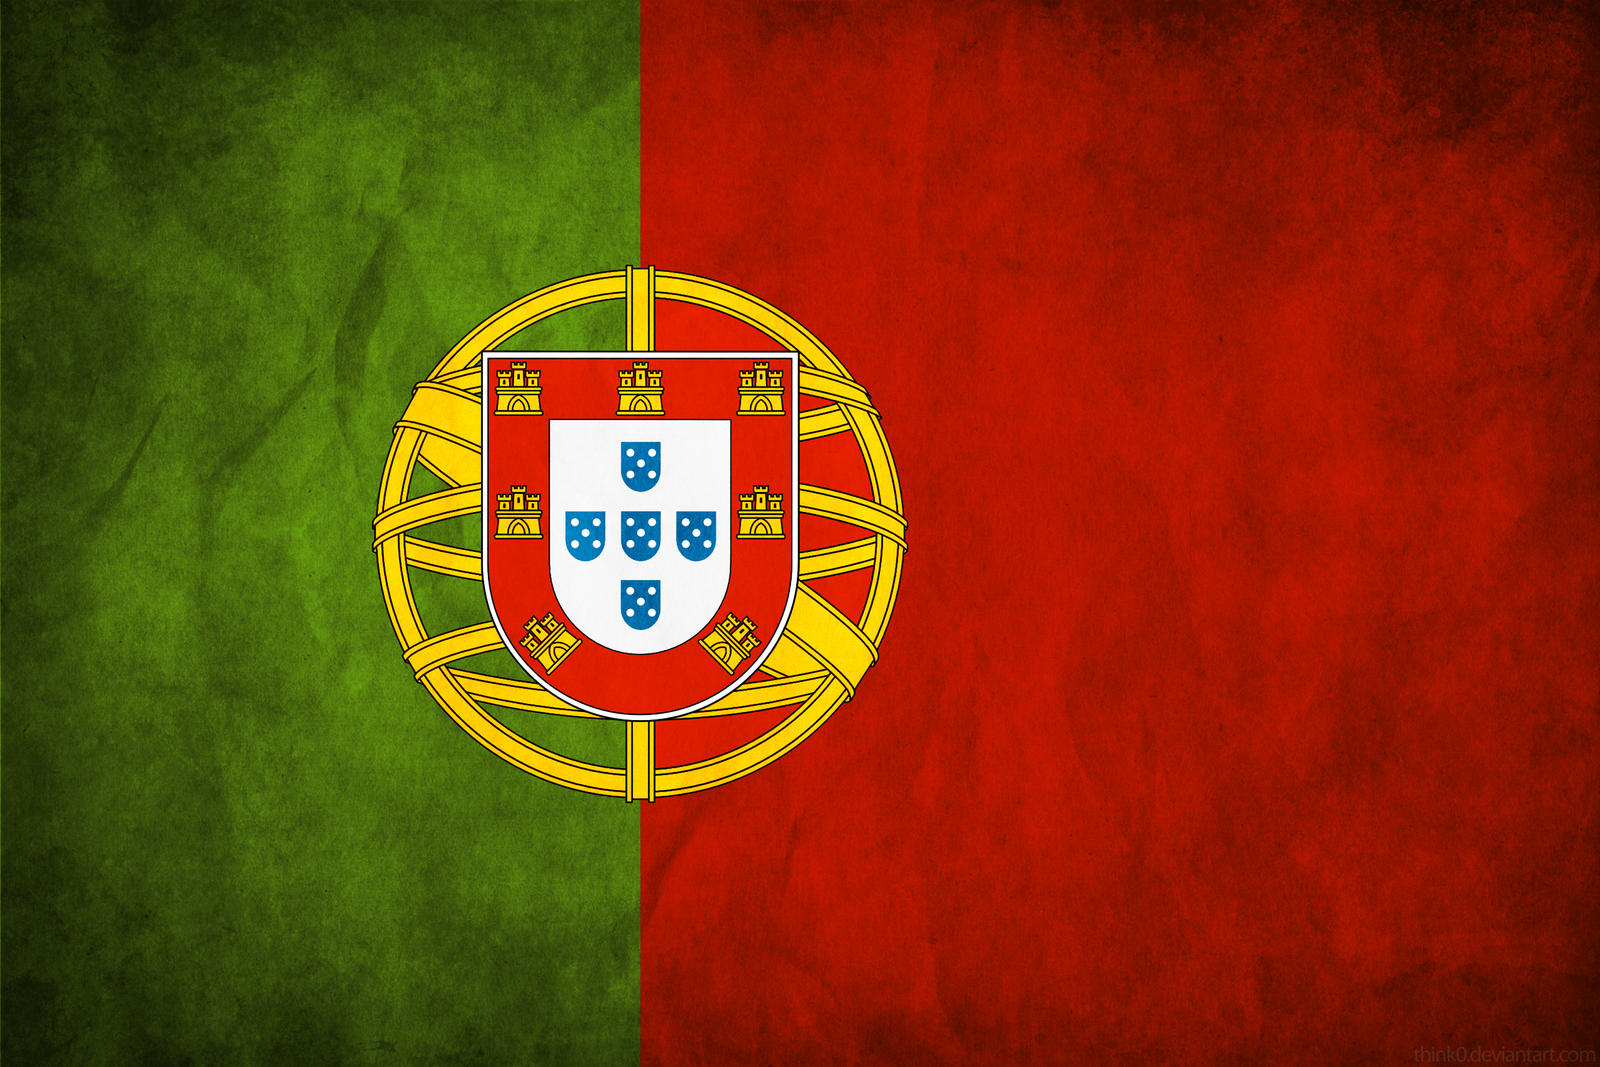 Portugal Grunge Flag by think0 on DeviantArt